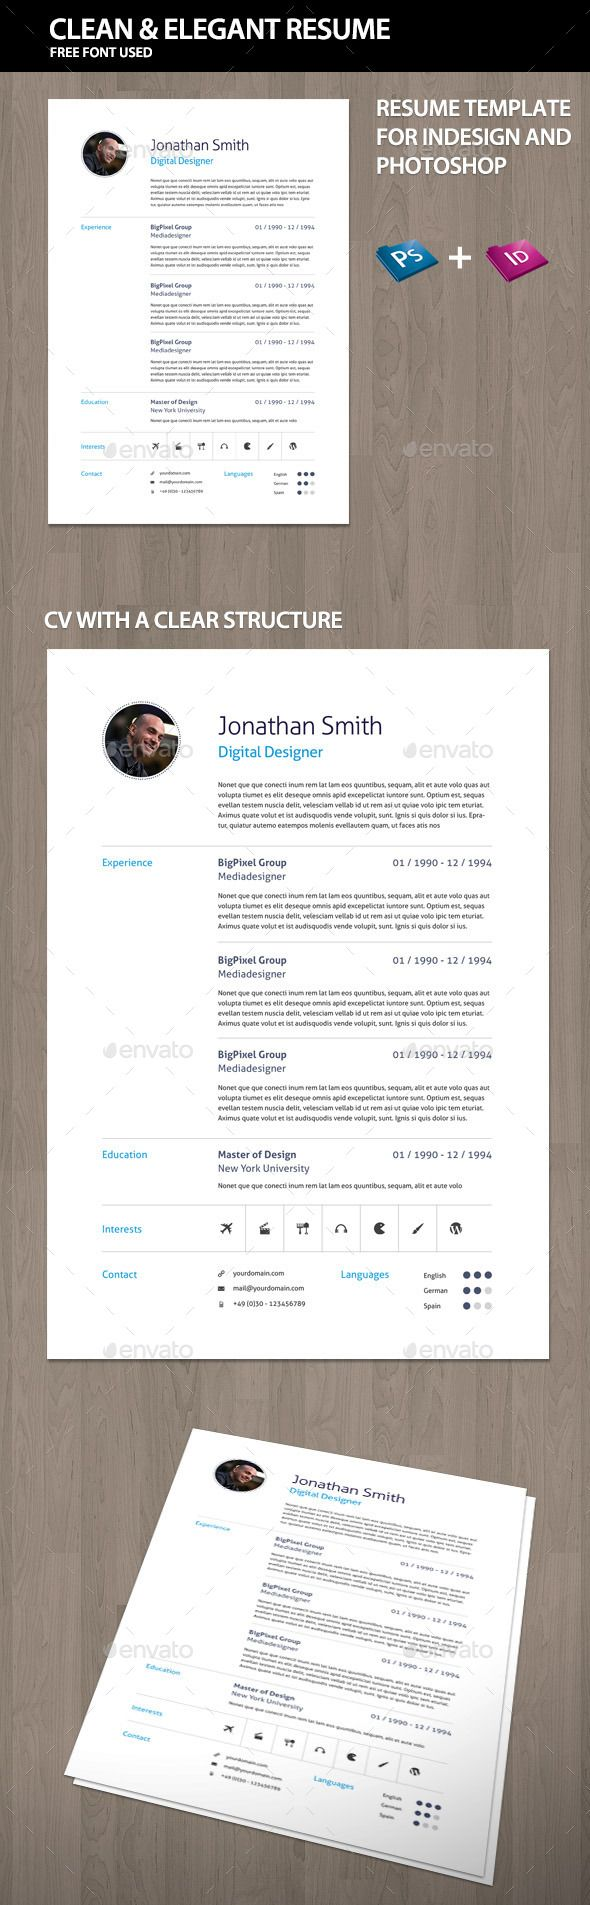 Elegant curriculum vitae cv resume unique resume simple resume elegant curriculum vitae cv resume by offi download includestemplate for indesign and photoshop organized layers yelopaper Images